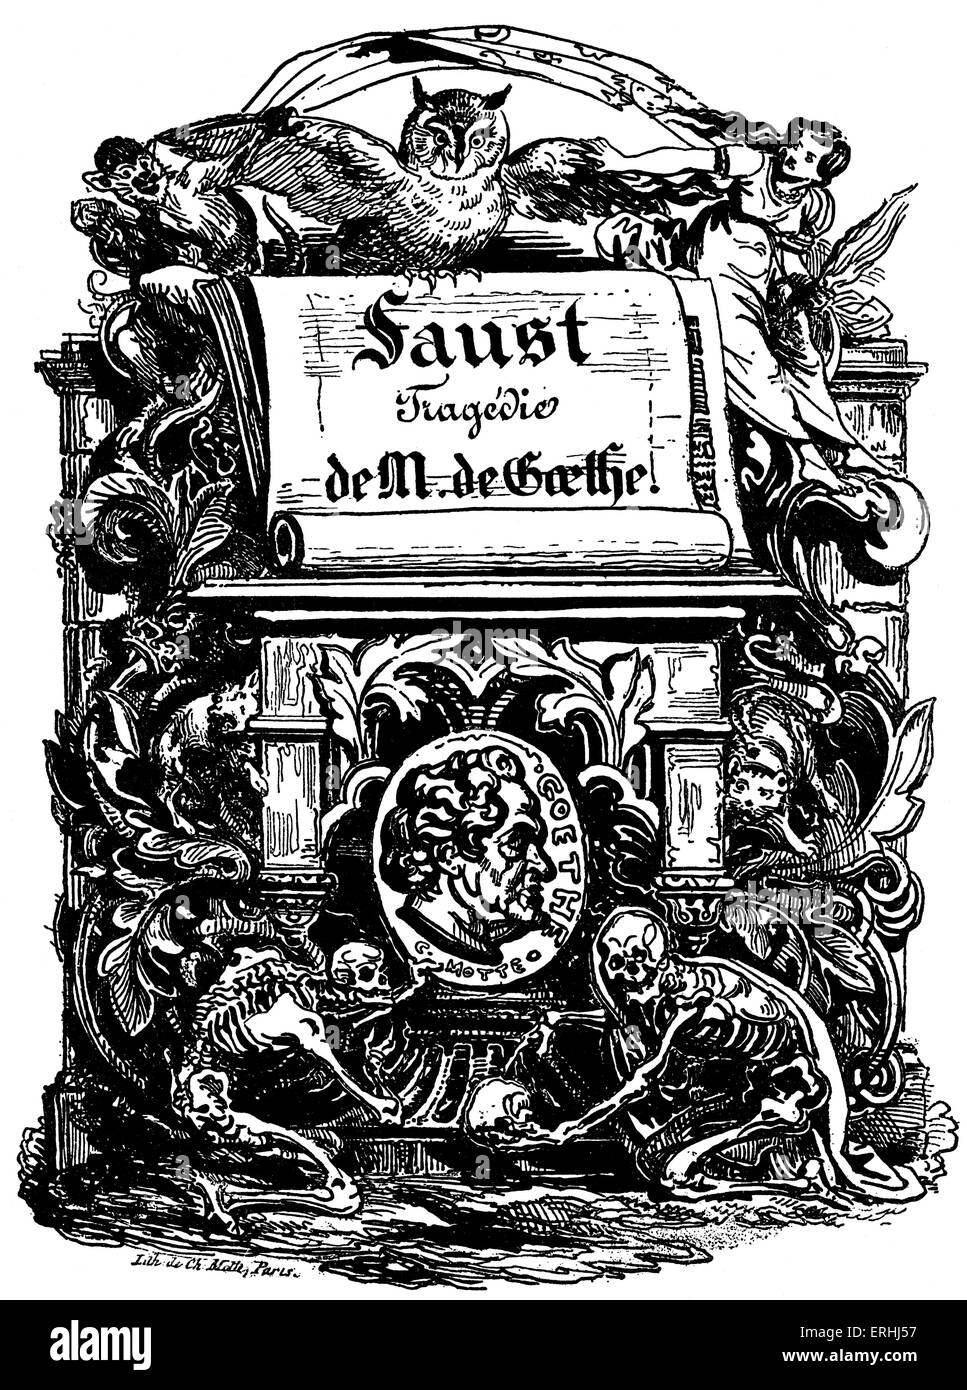 an analysis of the play faust by johann goethe Introduction faust, goethe's great dramatic poem in two parts, is his crowning work even though it is based on the medieval legend of a man who sold his soul t about faust, parts 1 and 2.